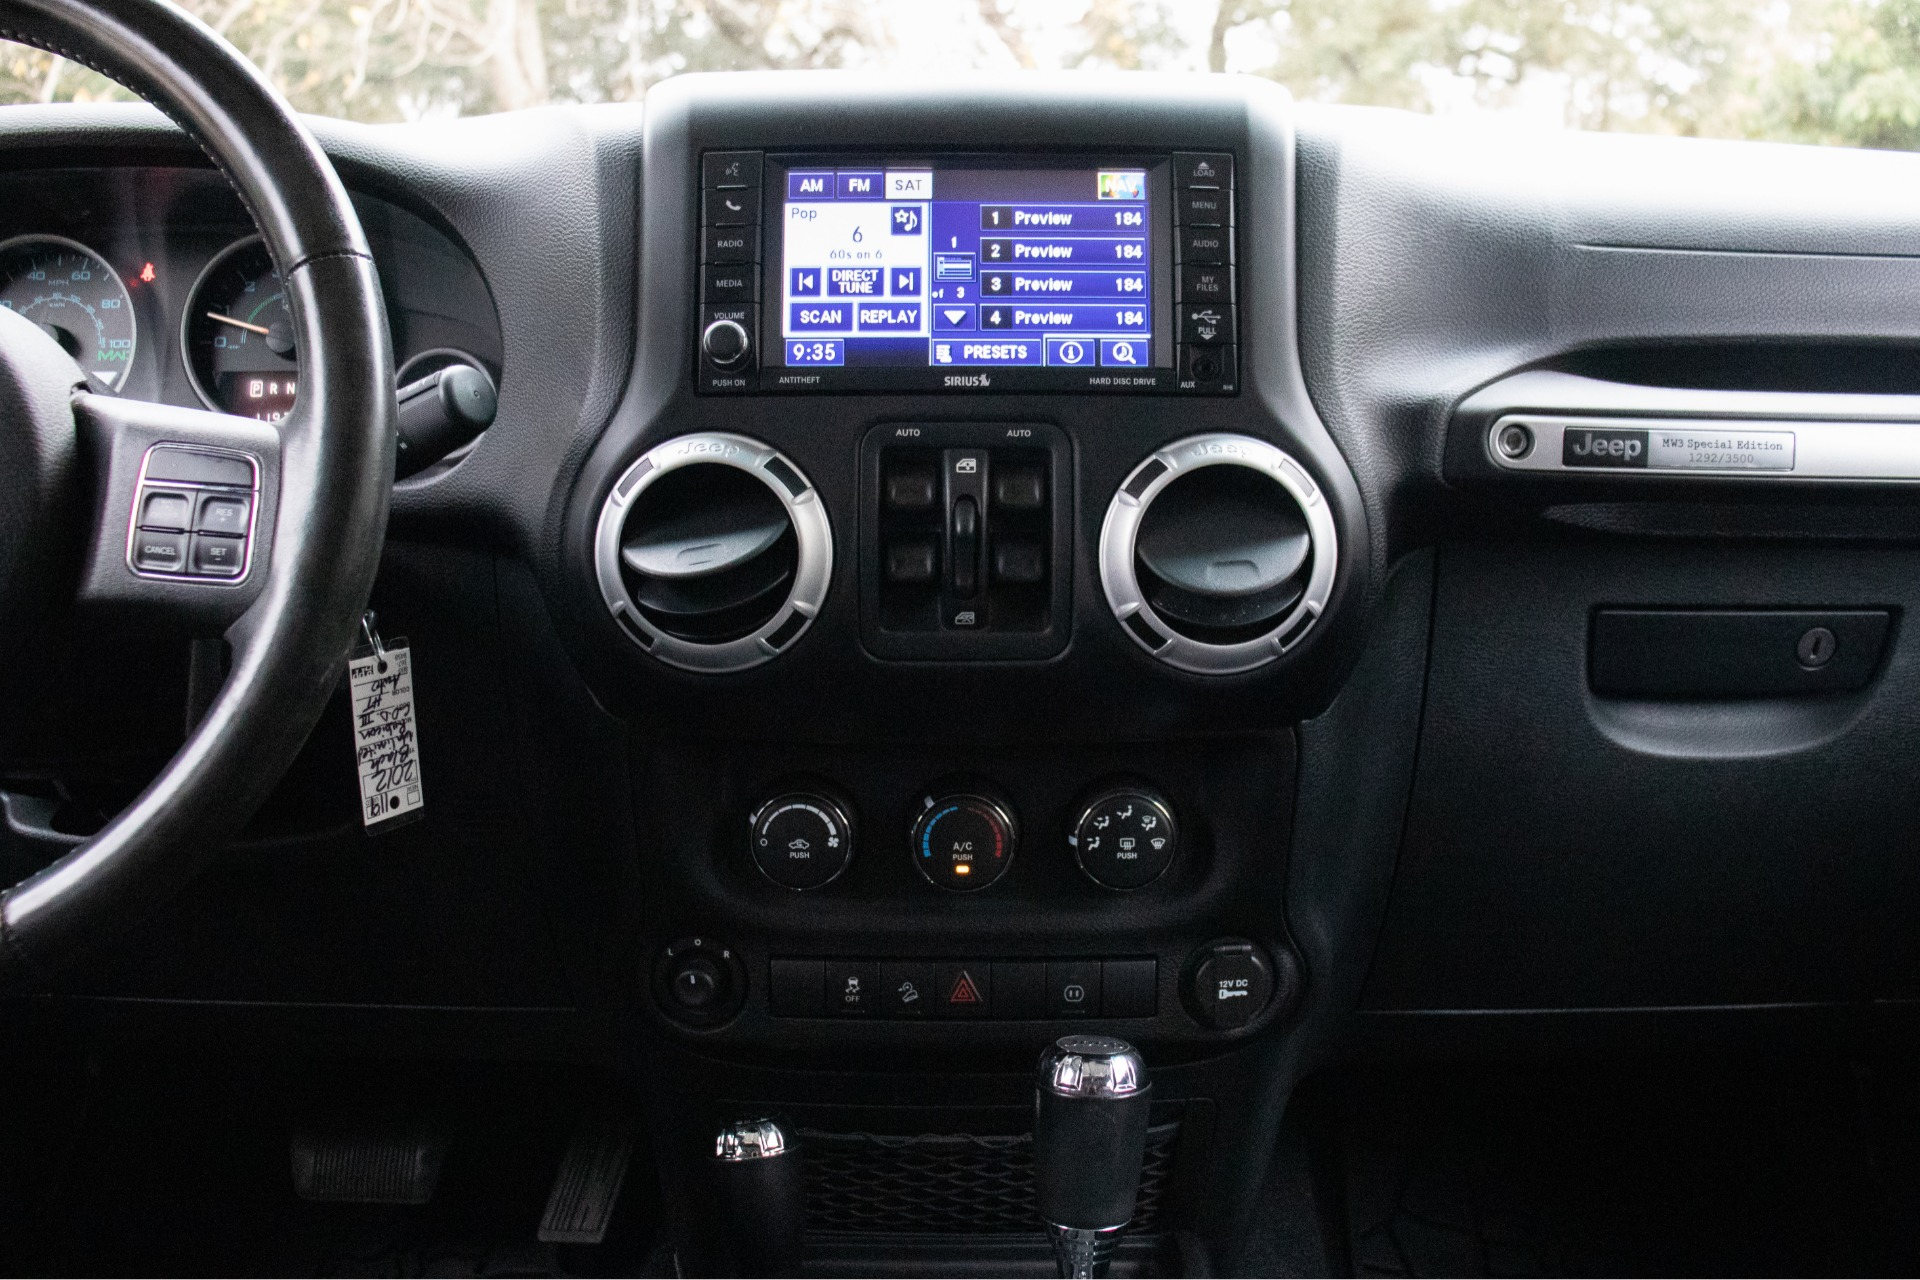 Used-2012-Jeep-Wrangler-Unlimited-Call-of-Duty-MW3